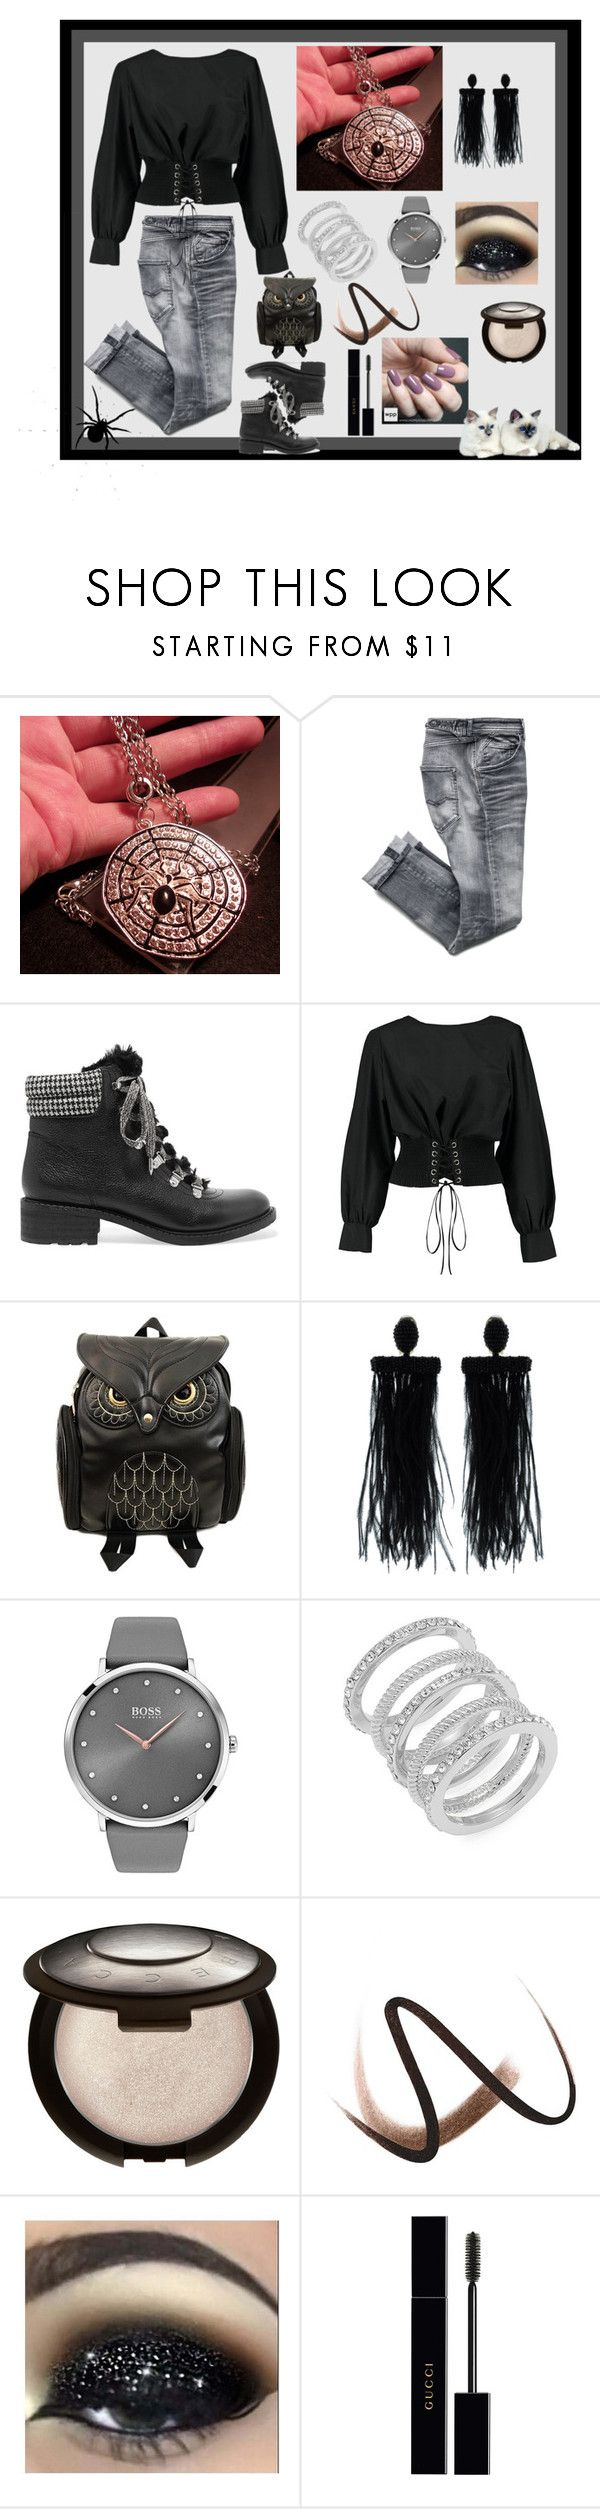 """""""Halloween Spider Web Pendant Necklace w/28-inch Rolo Chain"""" by bamasbabes ❤ liked on Polyvore featuring Sam Edelman, Boohoo, Oscar de la Renta, BOSS Black, Cole Haan, Burberry, Zoya and Gucci"""